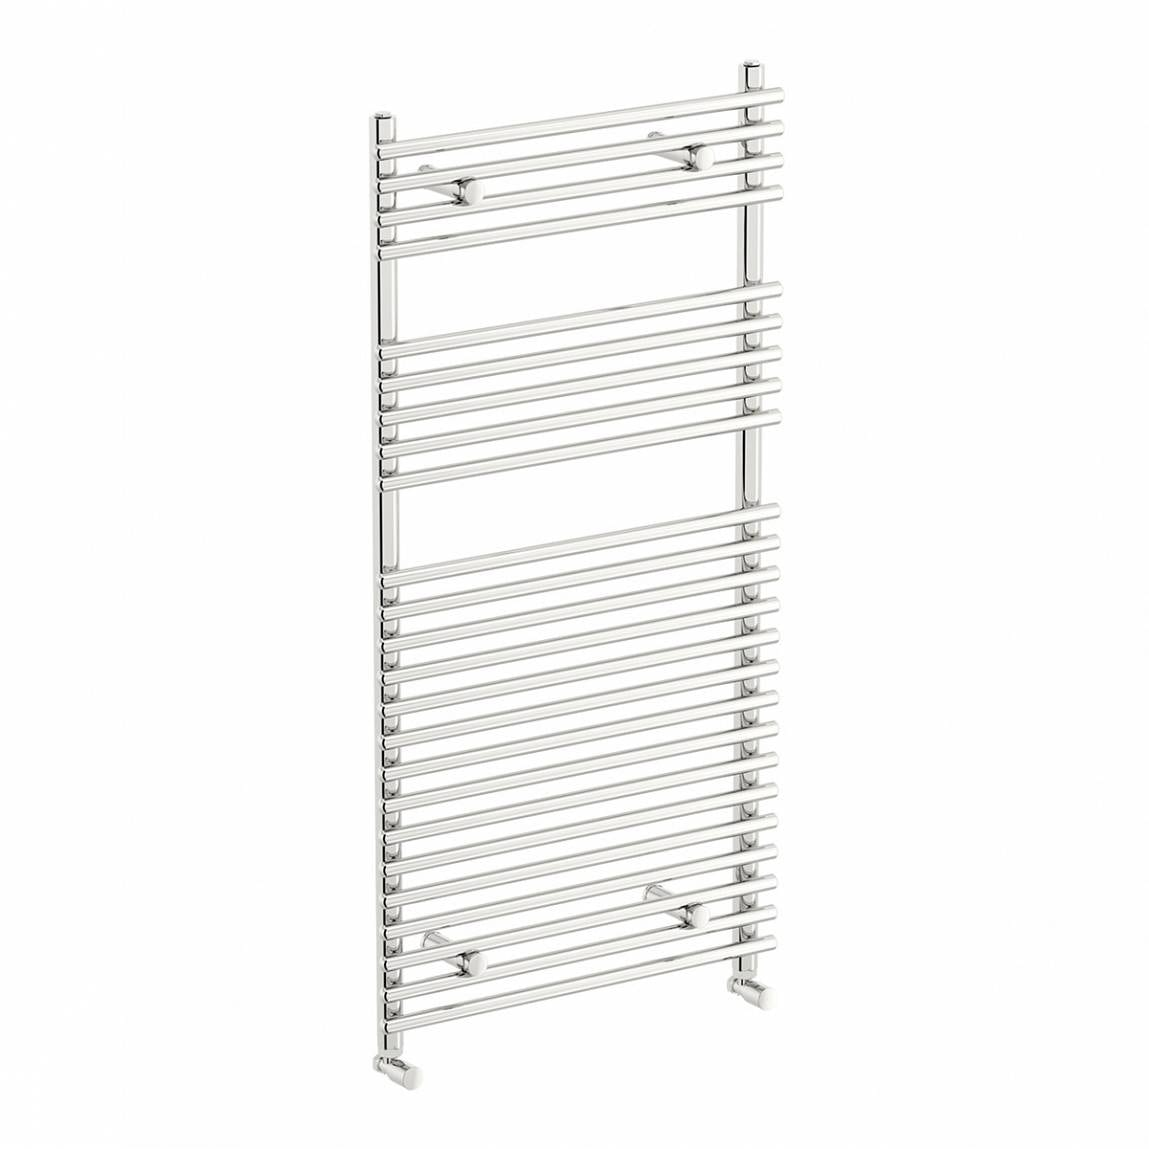 Orchard Derwent heated towel rail 1150 x 600